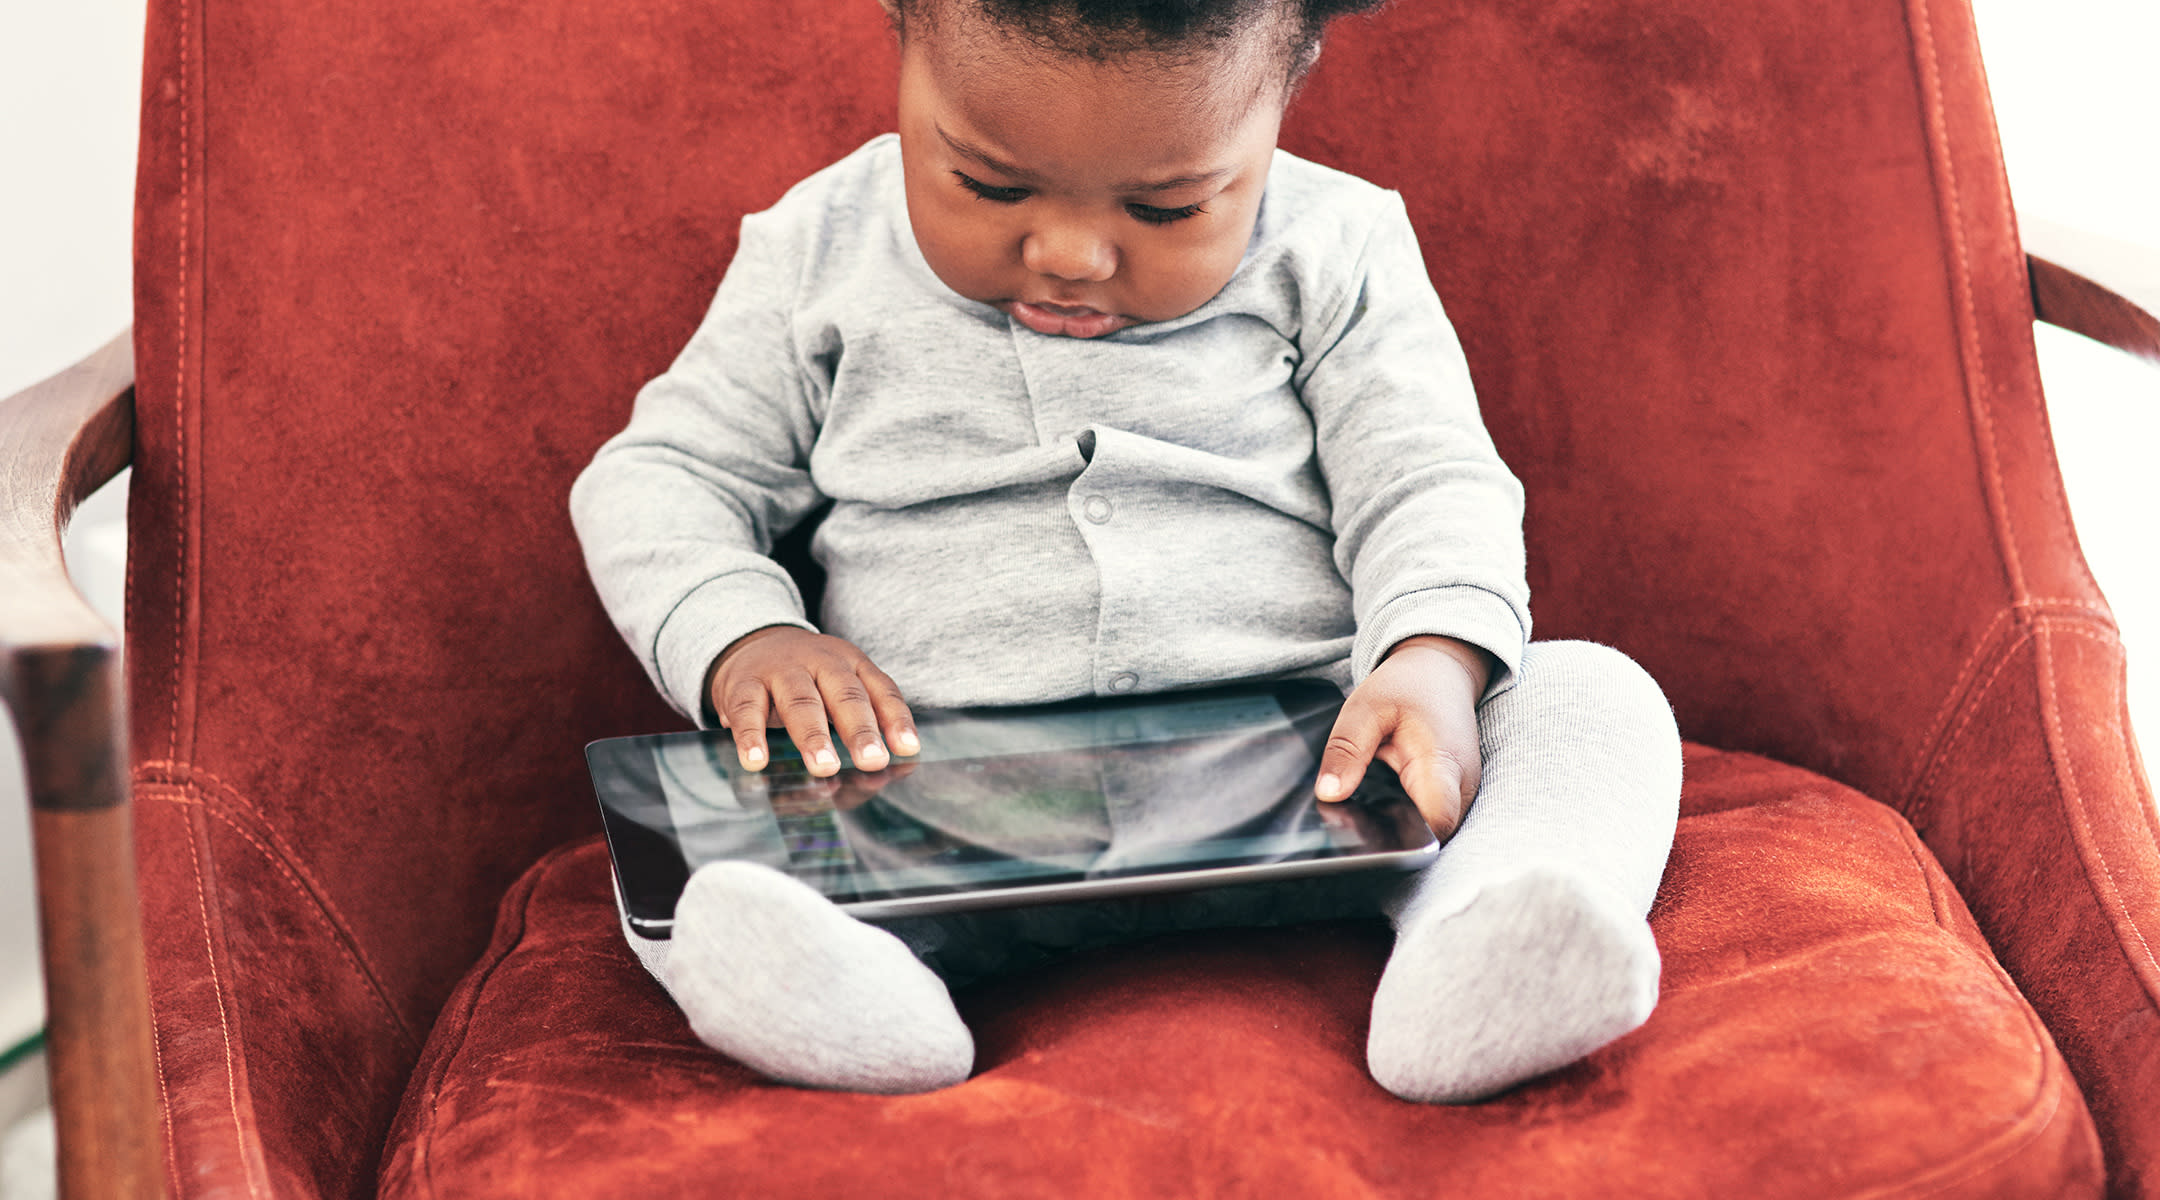 mom writes essay about benefits of co parenting internet calls  e books can engage your toddler more than print books study finds